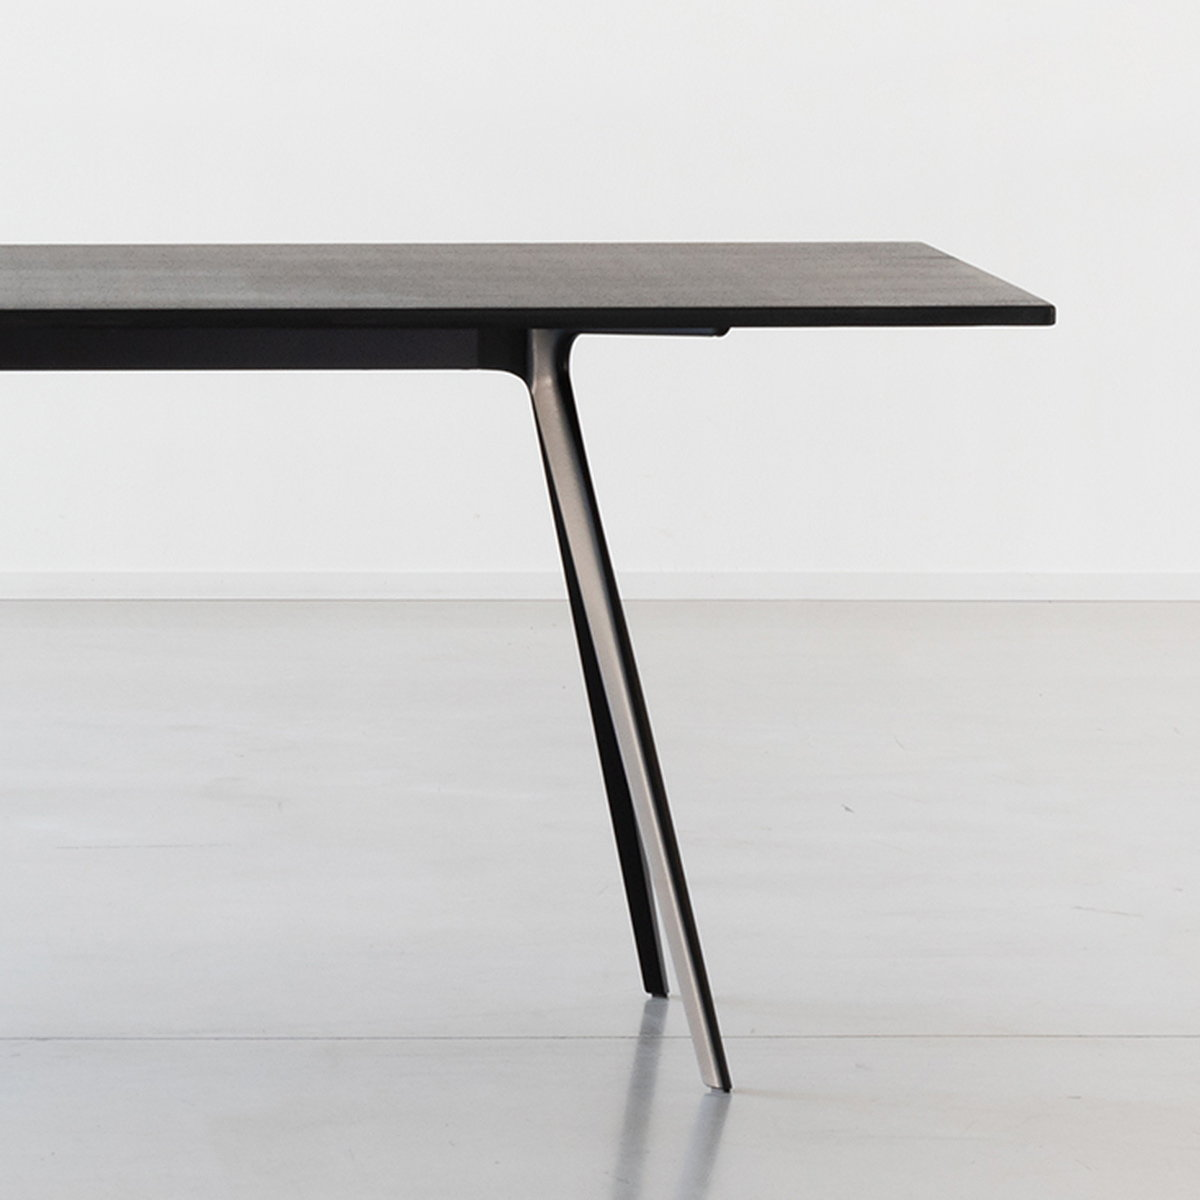 BAGUETTE Table by Ronan and Erwan Bouroullec